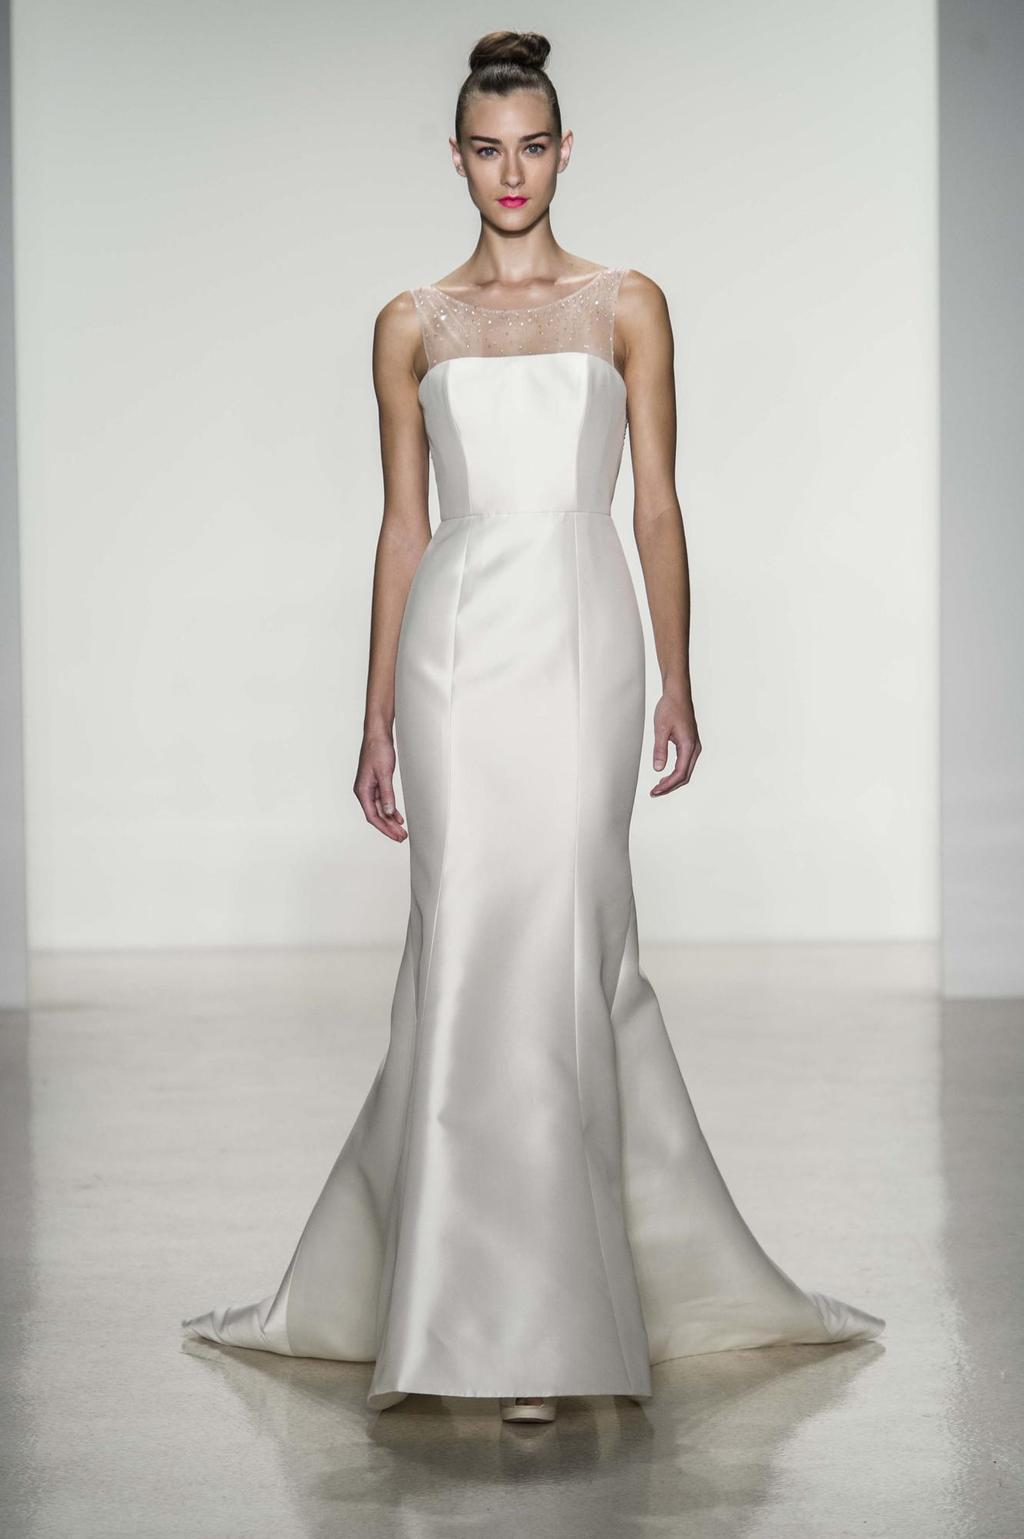 Preston-wedding-dress-by-amsale-fall-2014-bridal.full